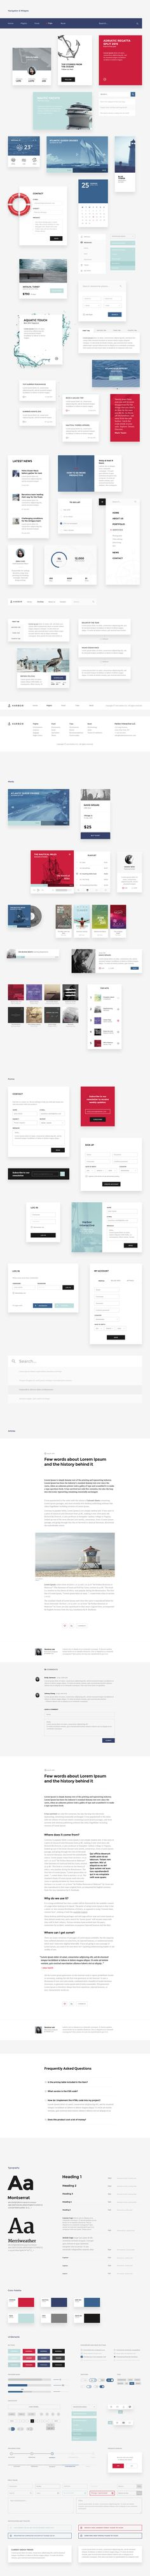 Clean, minimalist, nautical inspired UI kit, spread across 4 content categories. Containing 100+ elements and a style guide that will help you build your project in a snap! Compatible with Photoshop & Sketch!